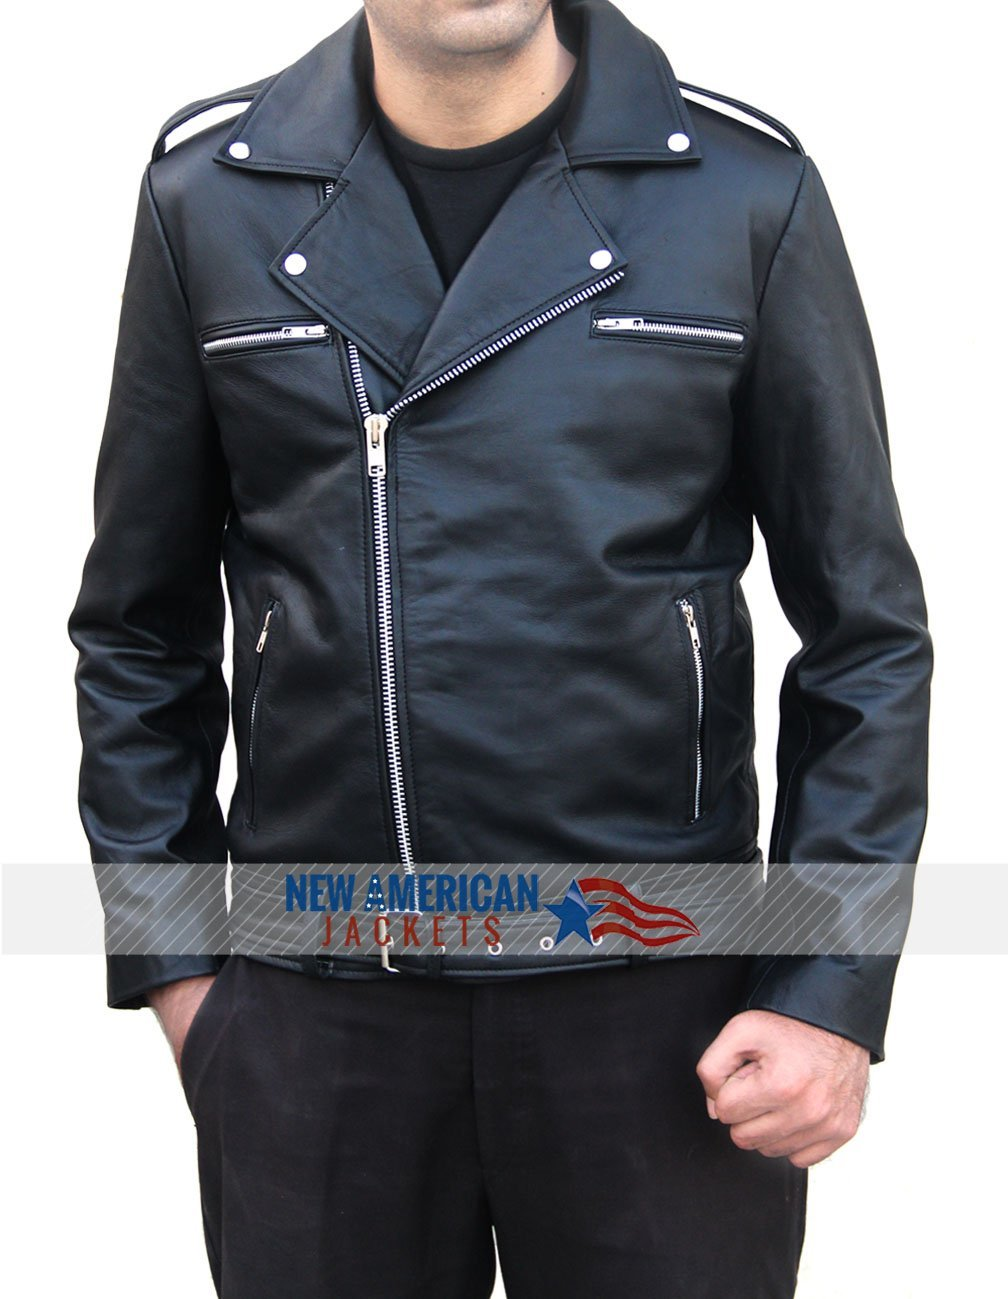 New leather jackets